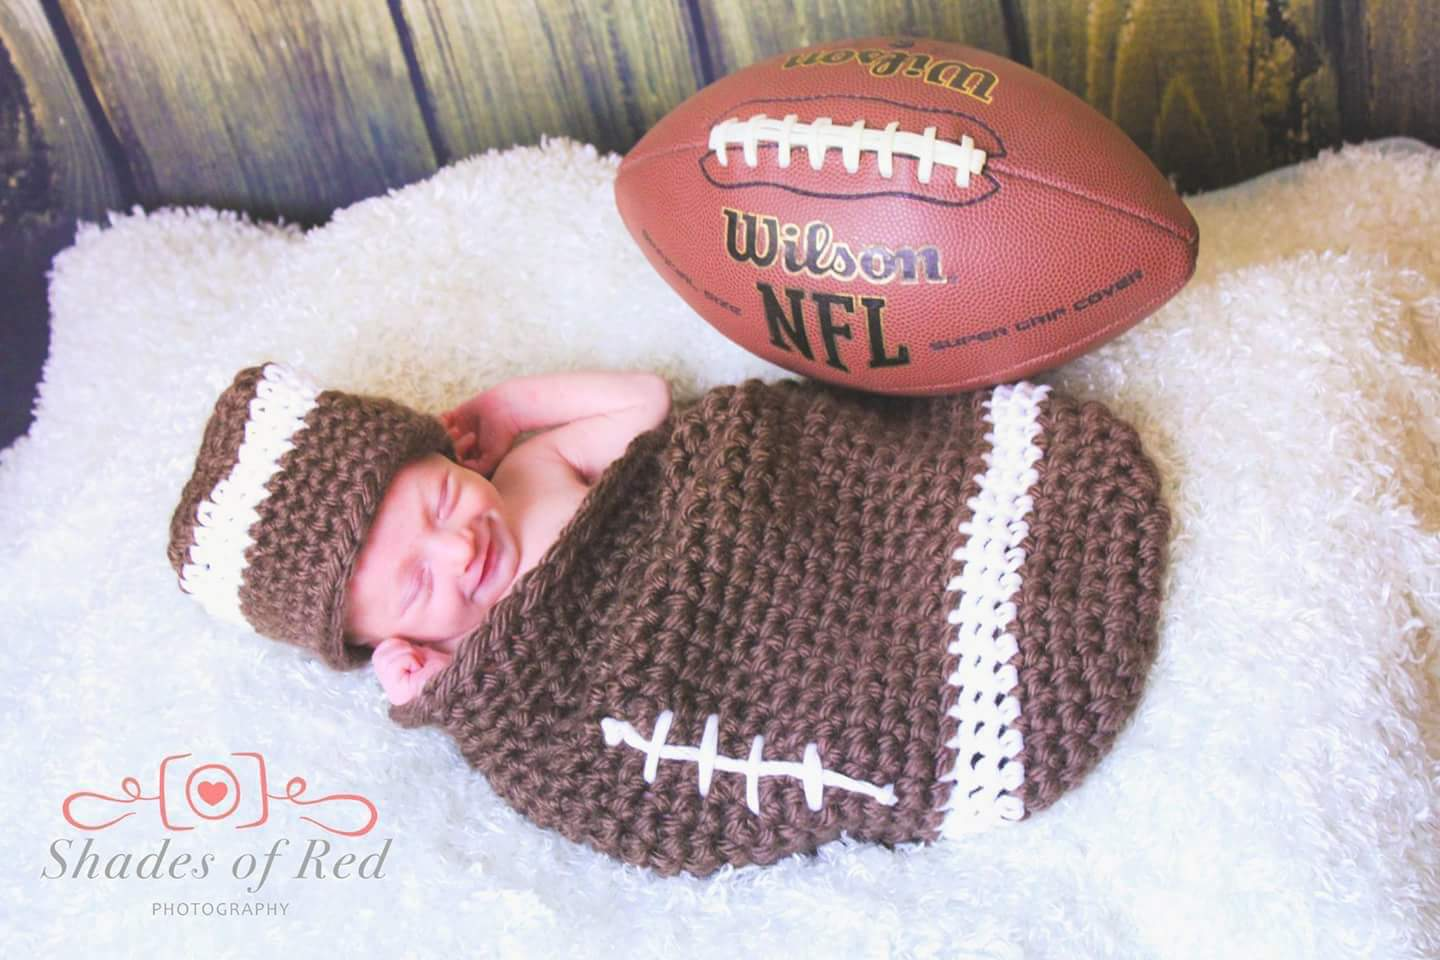 Alexander Joseph Fratoni, infant son of Bryan Fratoni Class of 2000, laying down nestled inside a crocheted football quilt with matching hat and a football next to him.